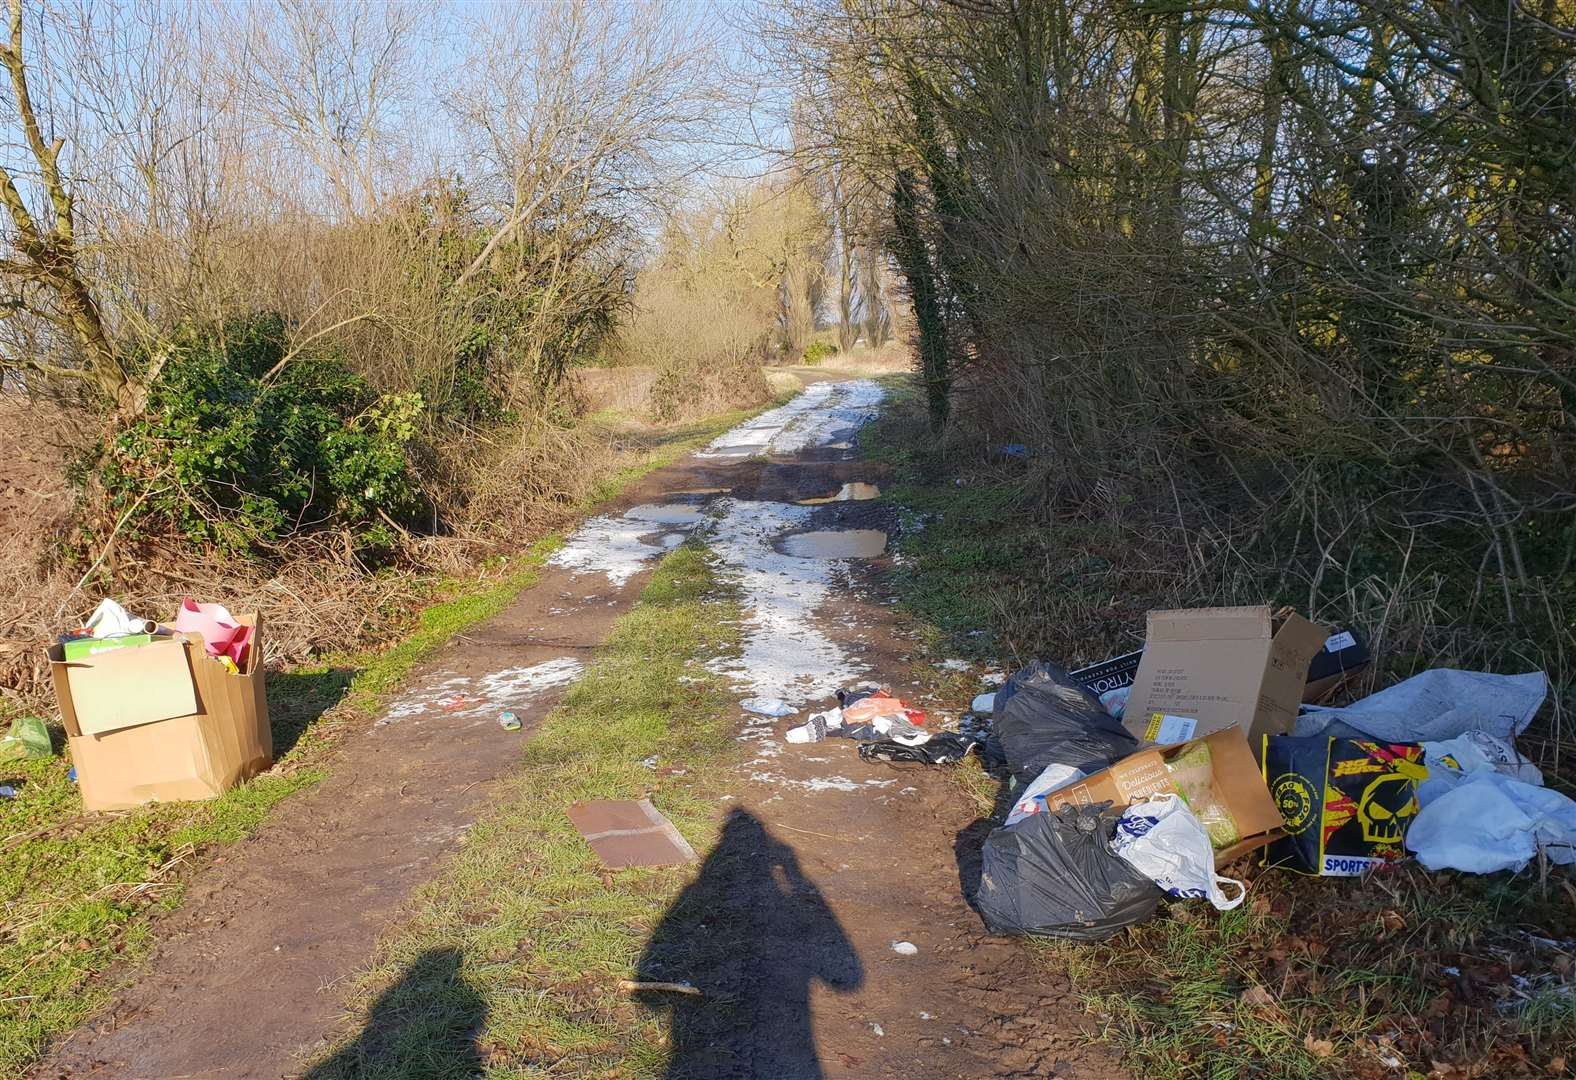 Dramatic rise in fly-tipping recorded in district area